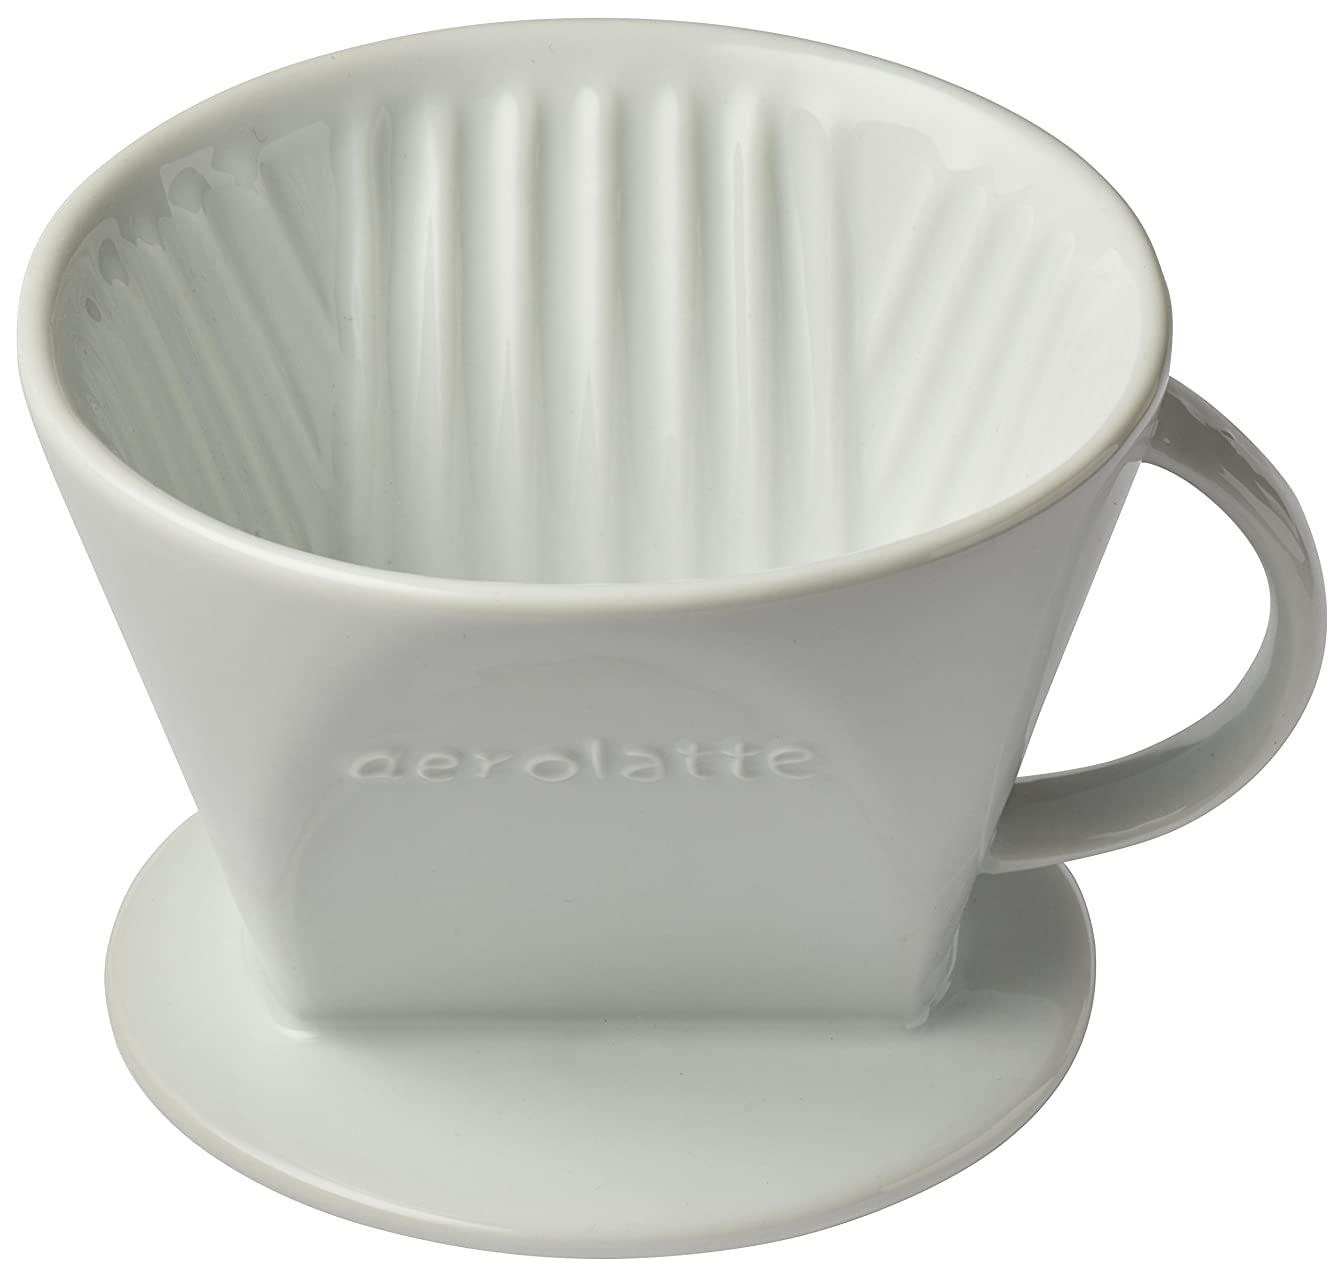 Aerolatte 029 Pour Over Coffee Dripper Reusable Filter Cone Brewer, Number 2-Size, Ceramic, Brews 2 to 6-Cups icefobhbxfaen42